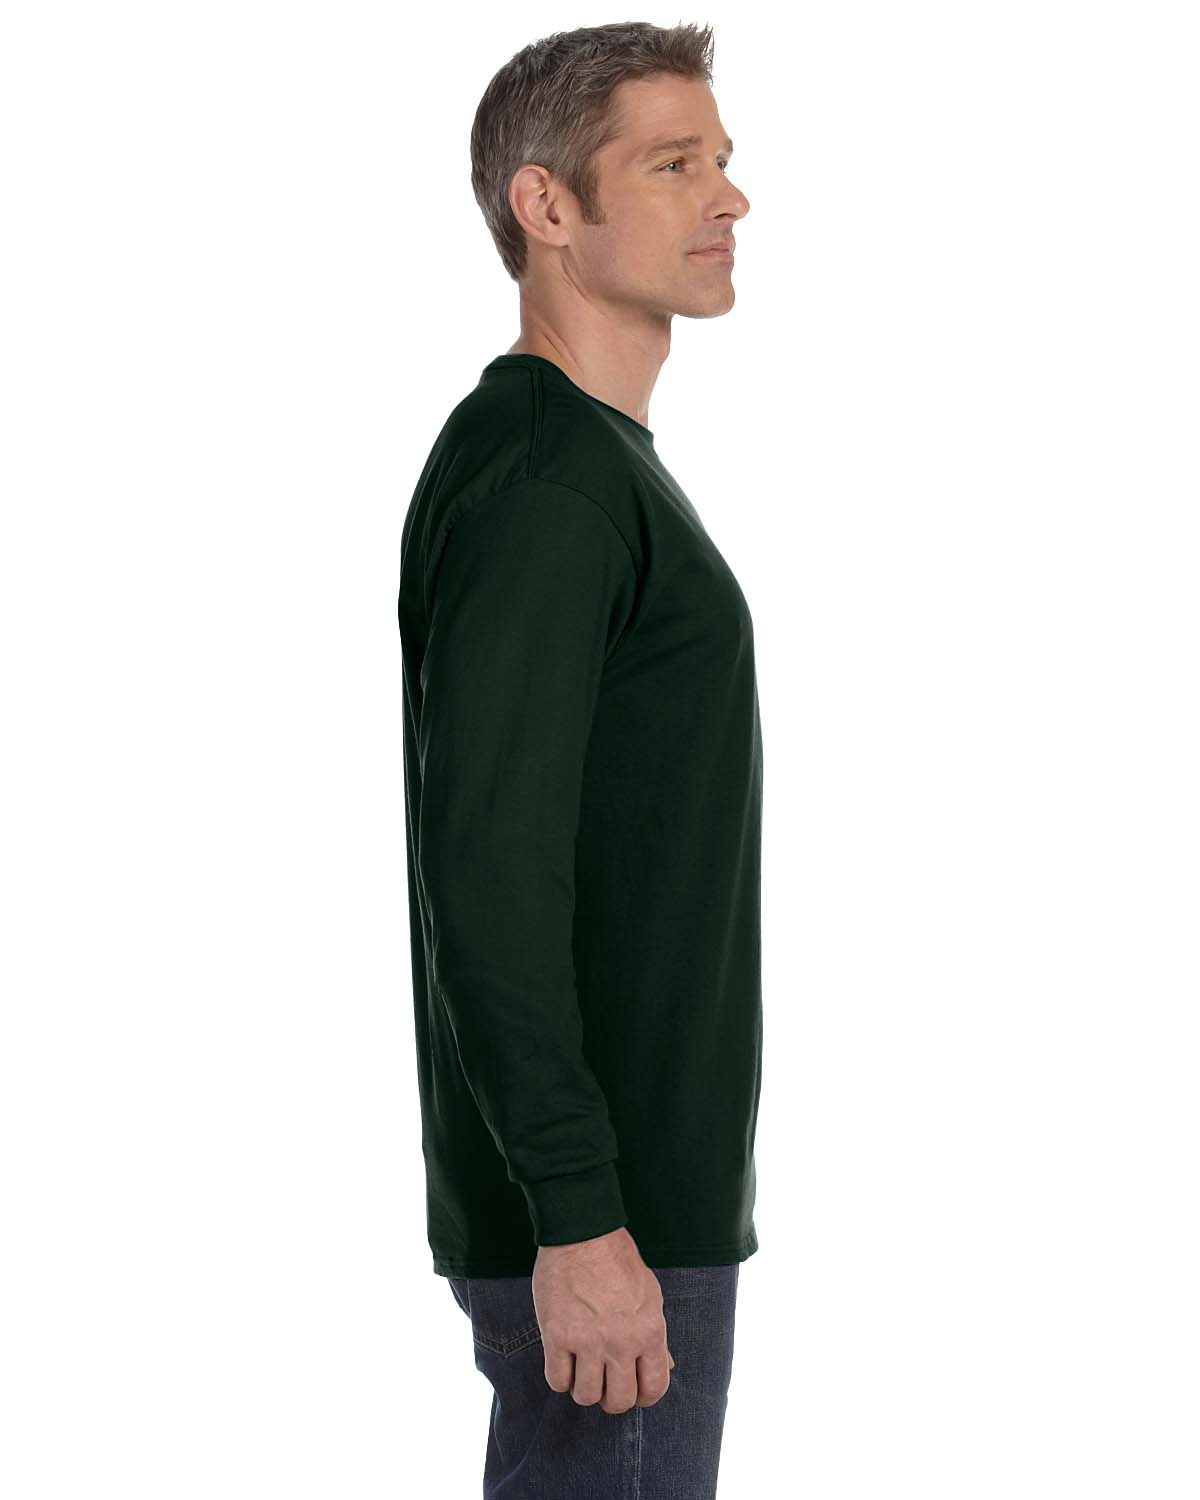 Gildan-Mens-T-Shirt-Long-Sleeve-Heavy-Cotton-5-3-oz-S-XL-R-G540-5400 thumbnail 18